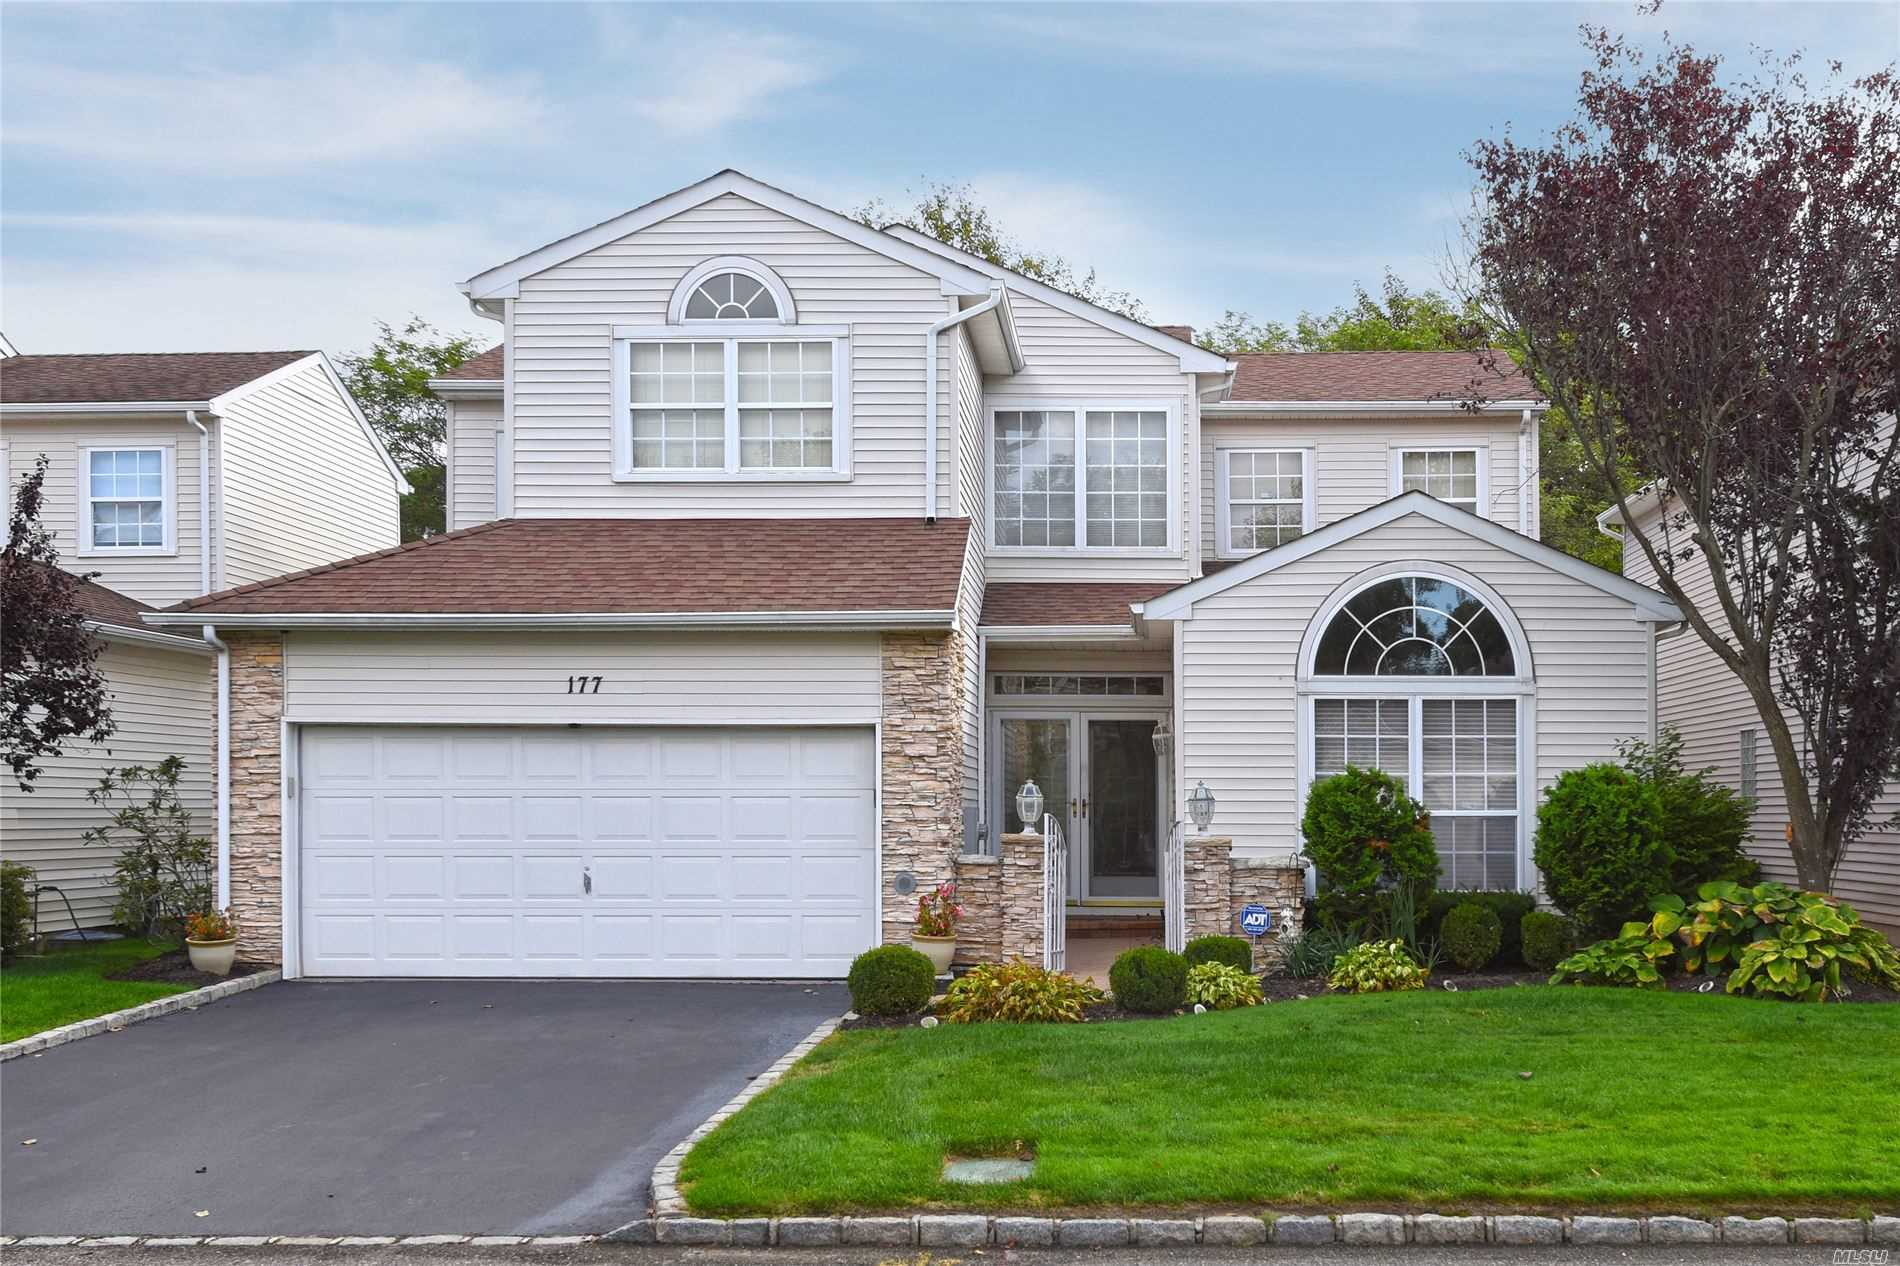 Property for sale at 177 Windwatch Drive, Hauppauge NY 11788, Hauppauge,  New York 11788